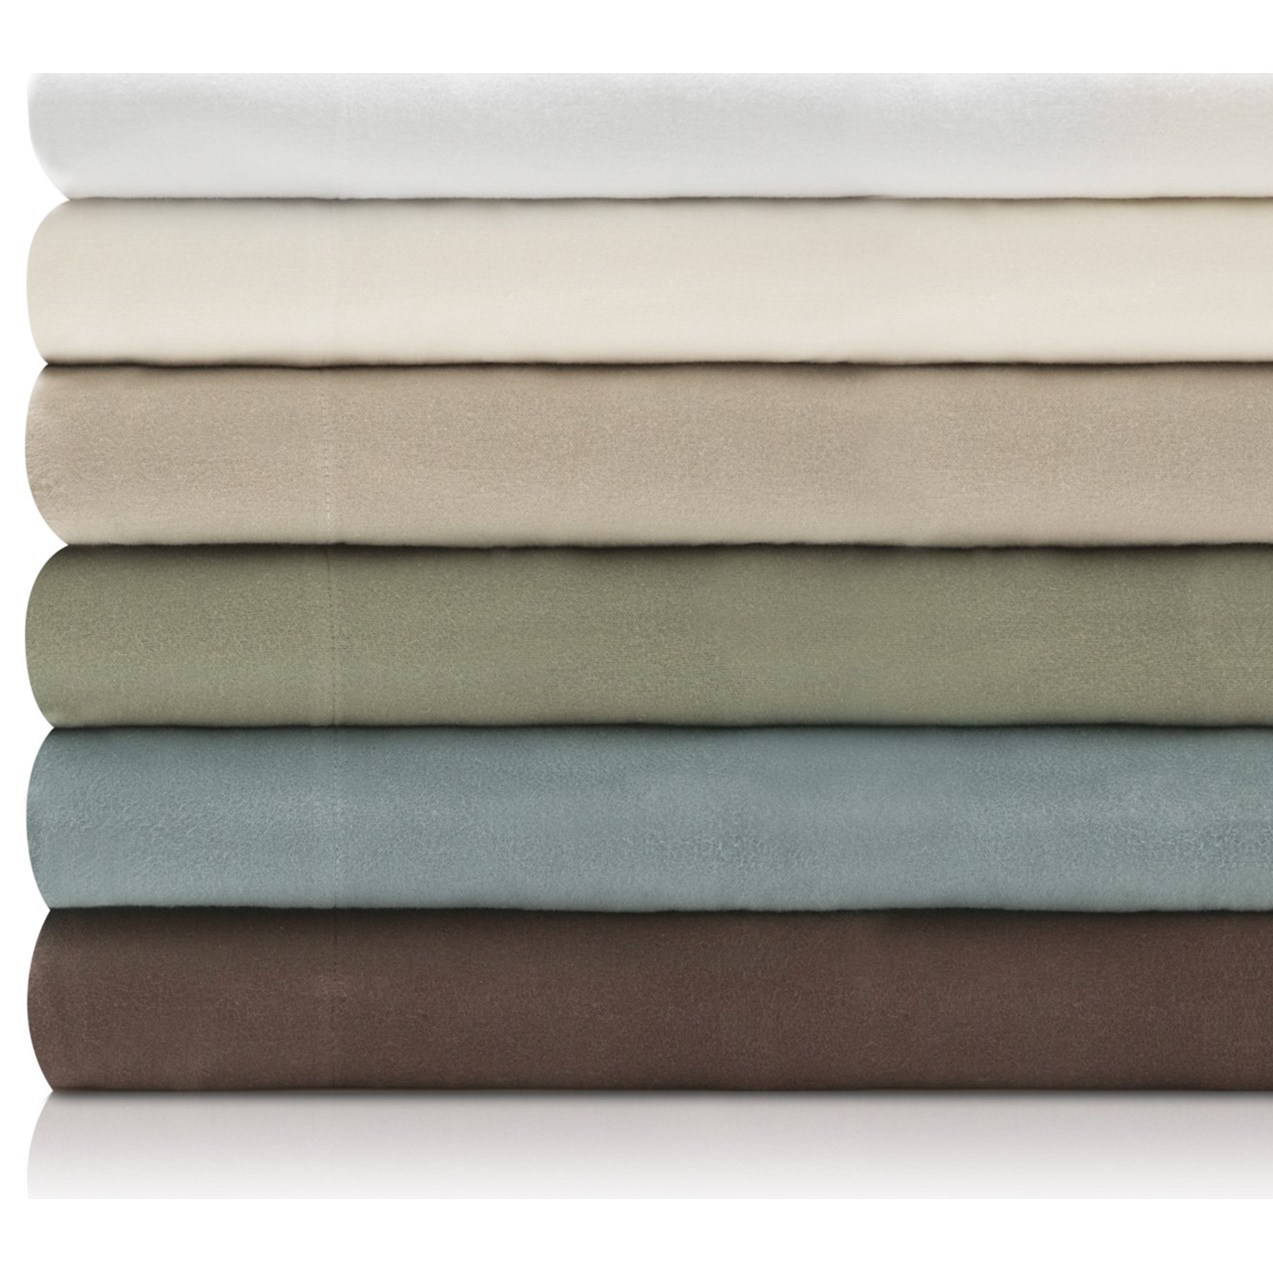 Malouf Portuguese Flannel Full XL Woven™ Portuguese Flannel Sheet Set - Item Number: WO19FXCOFS